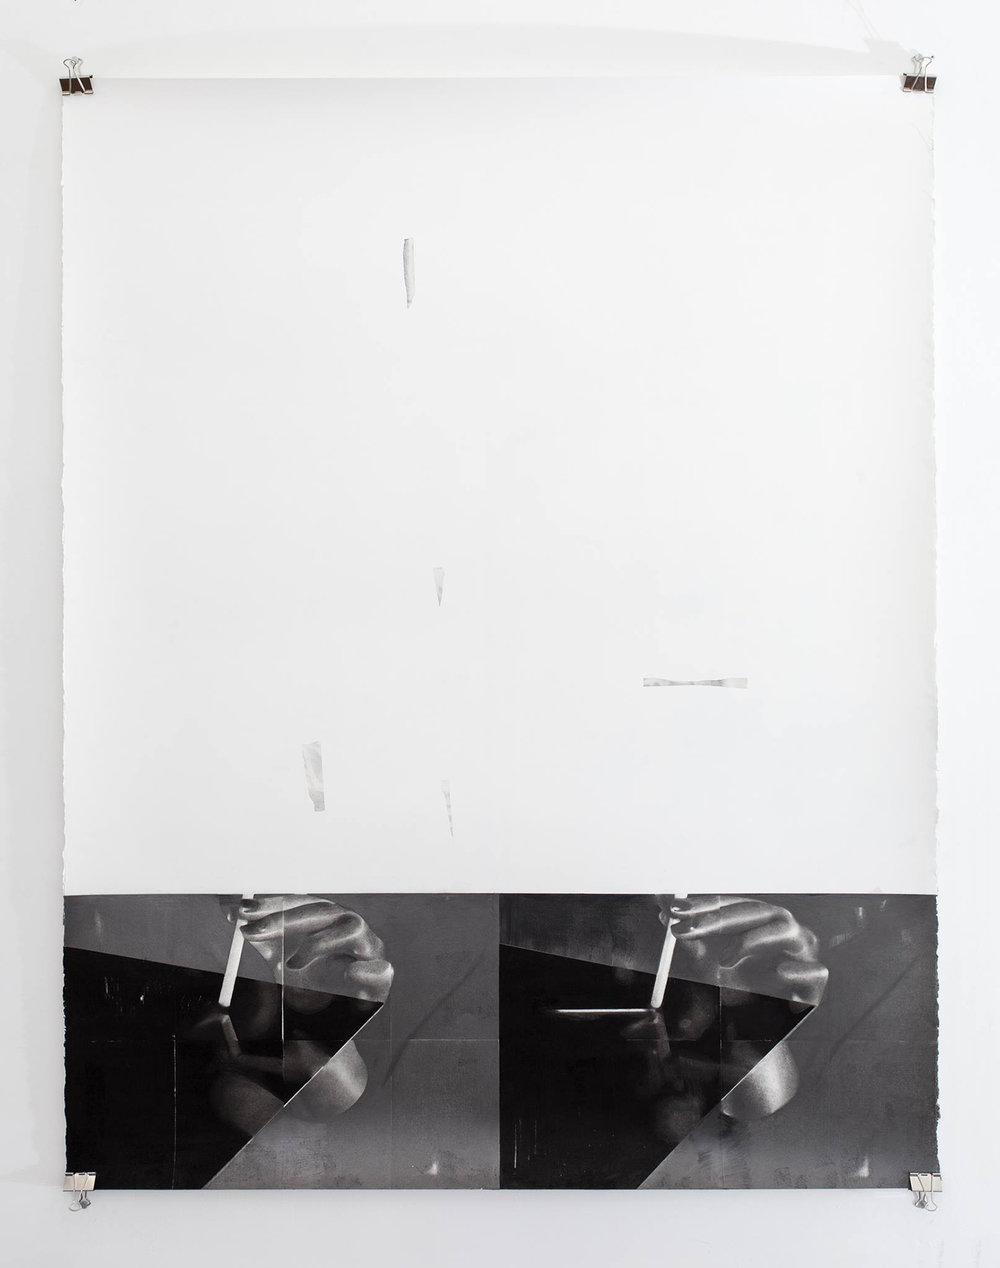 Andreas Albrectsen, 'Track and Trace', 2017 (Graphite, charcoal, spray paint on paper, 114 x 146 cm). Foto: Kristian Touborg.